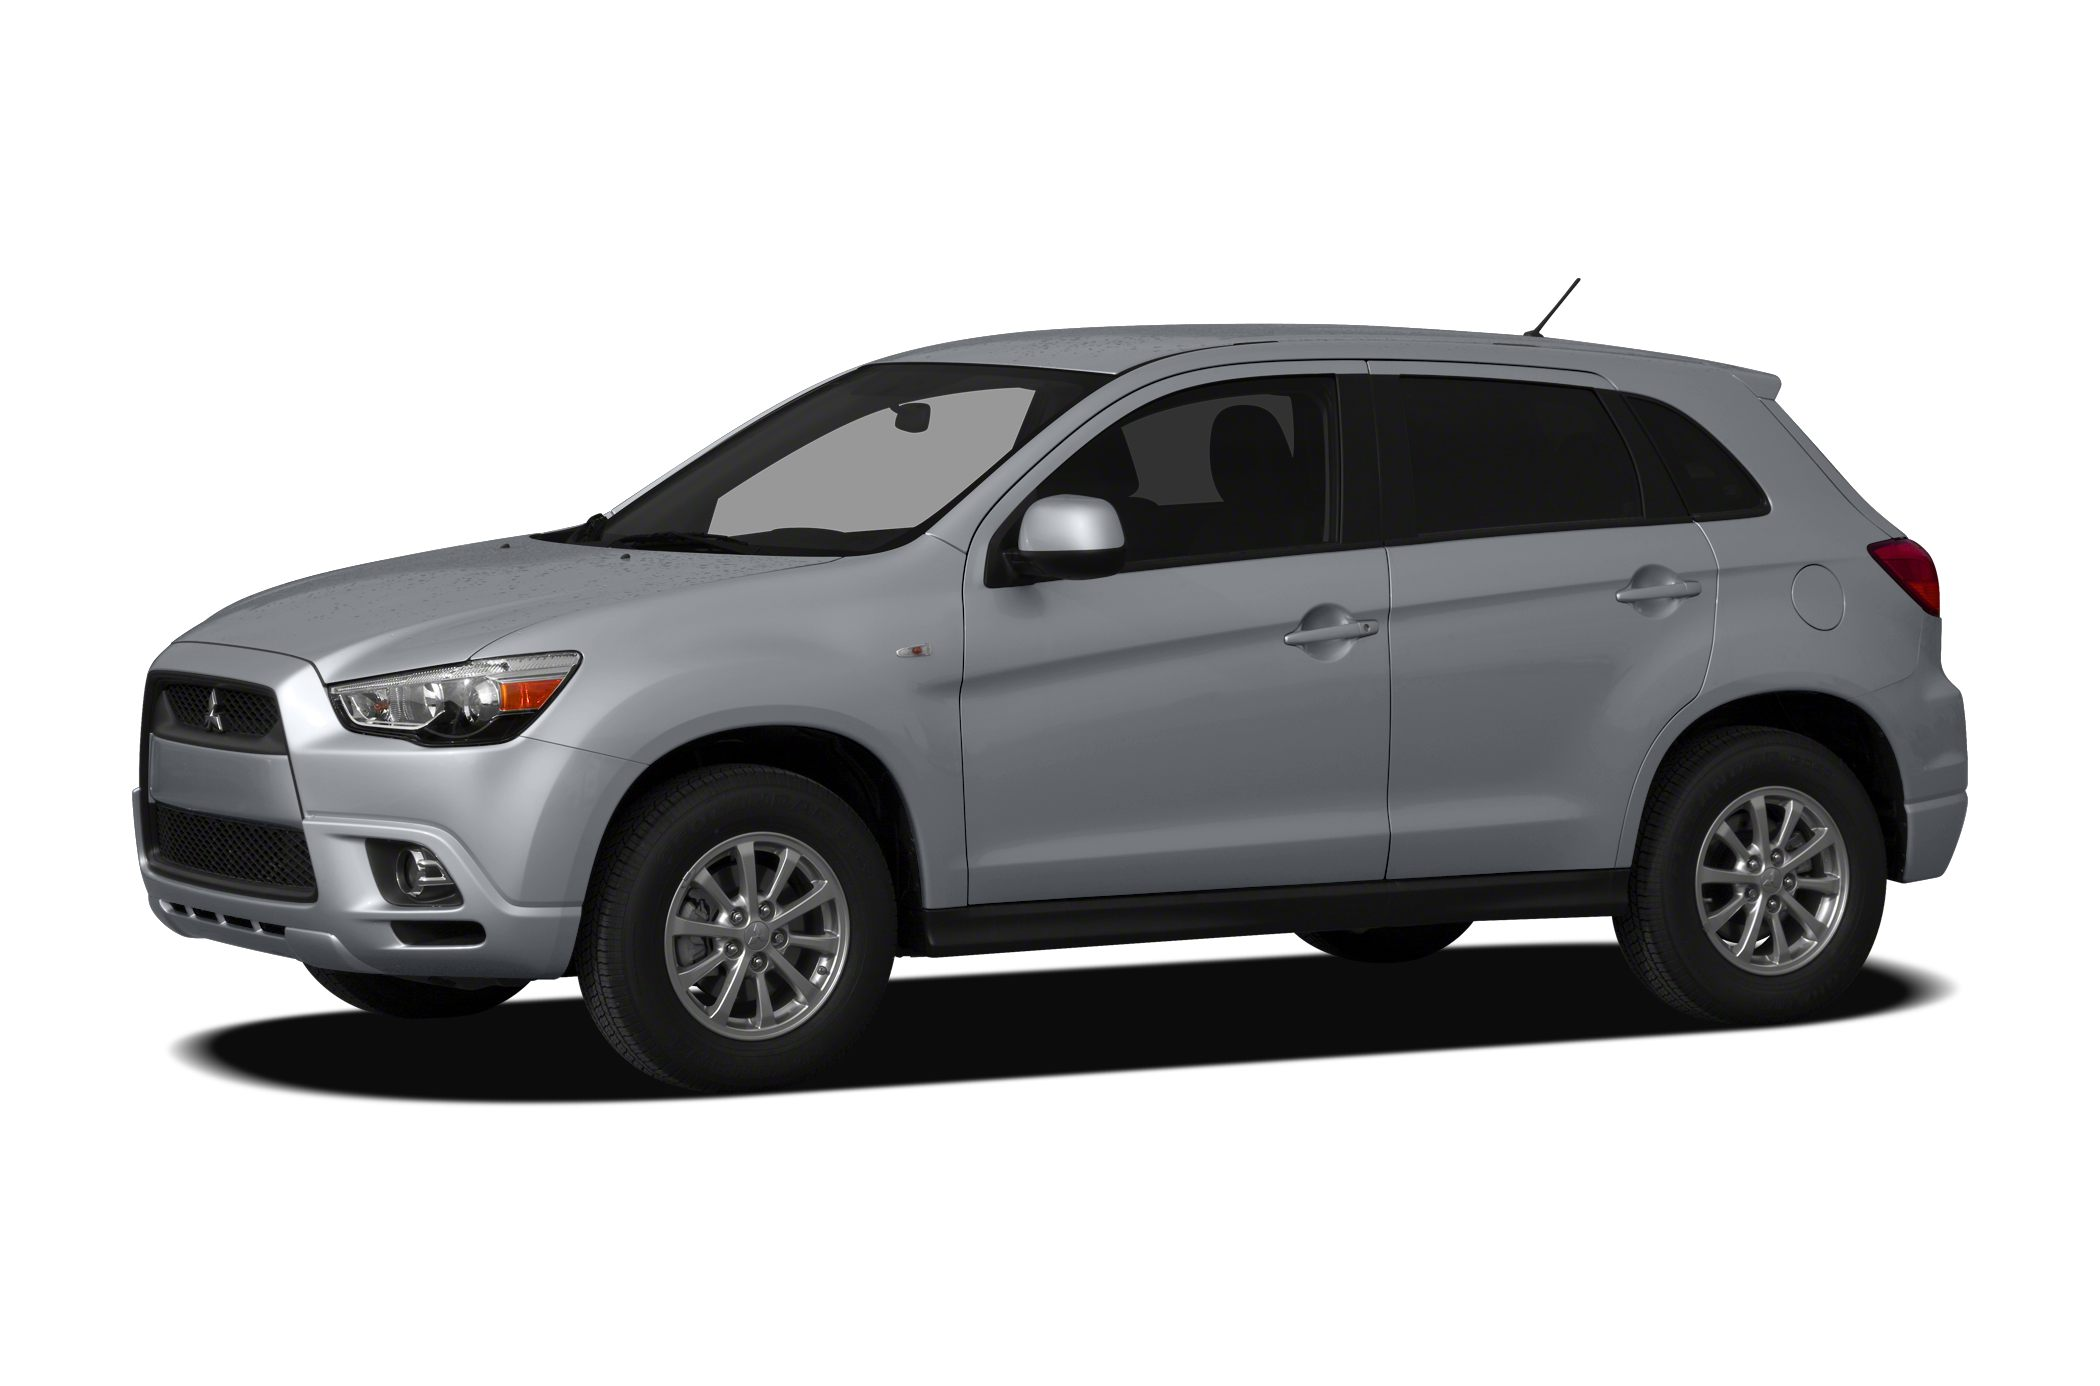 2012 Mitsubishi Outlander Sport ES Win a score on this 2012 Mitsubishi Outlander Sport ES before s